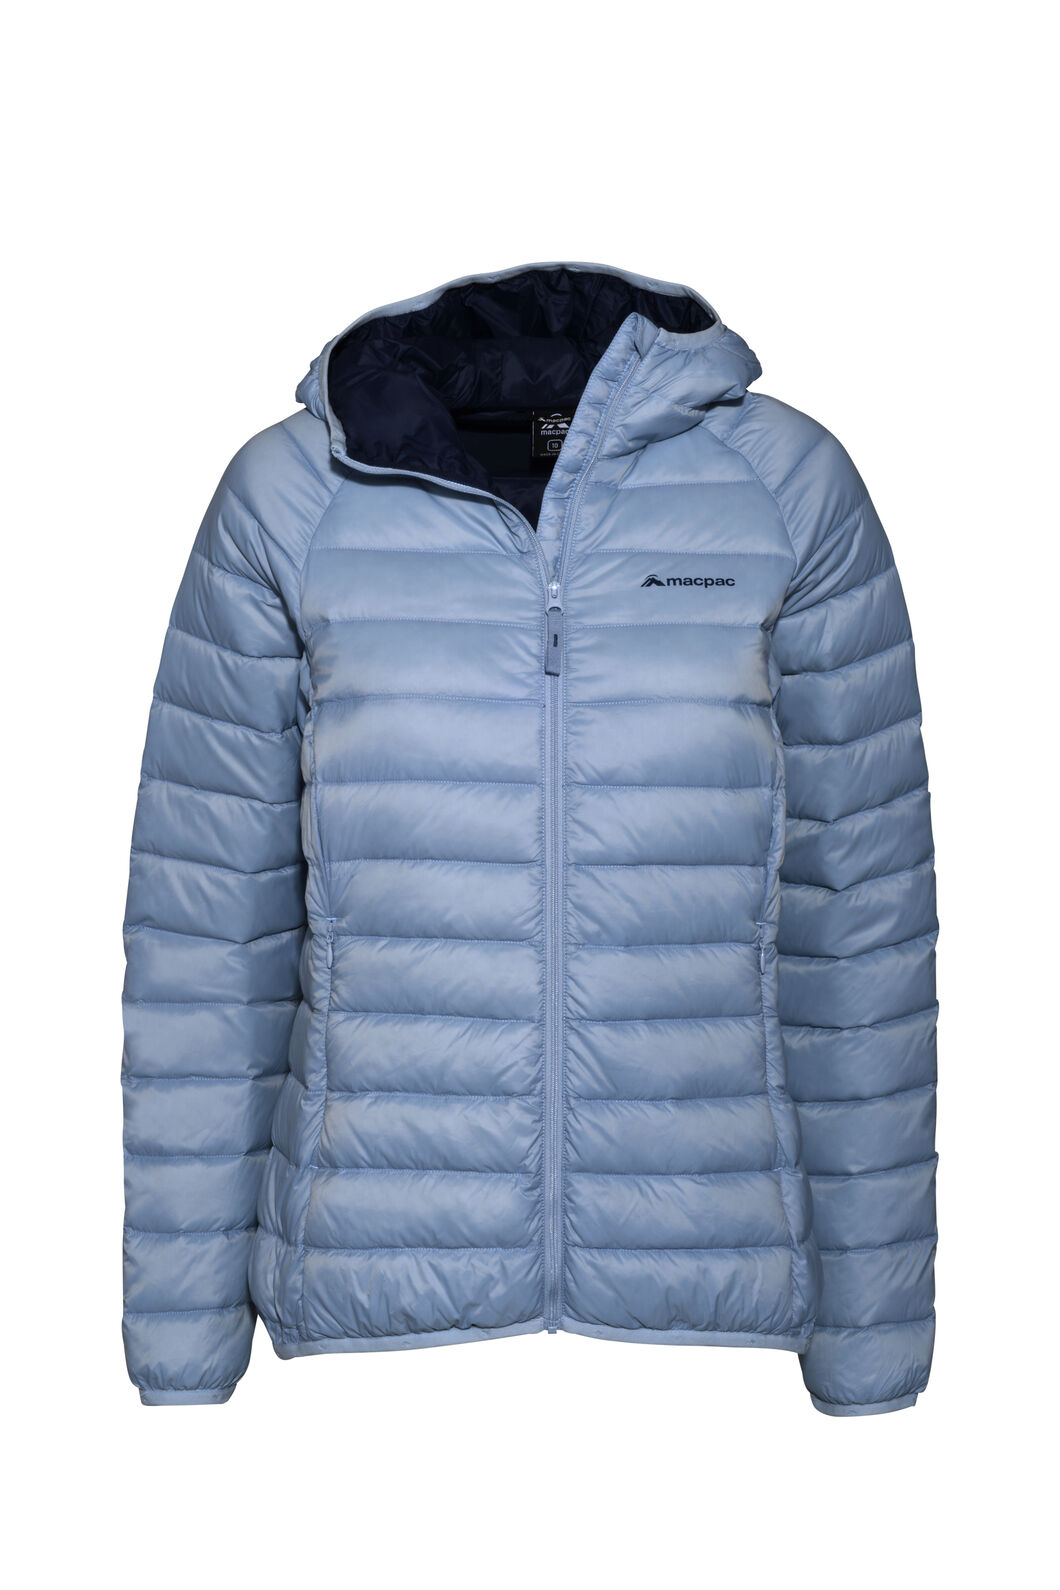 Macpac Uber Light Hooded Down Jacket — Women's, Blue Fog, hi-res